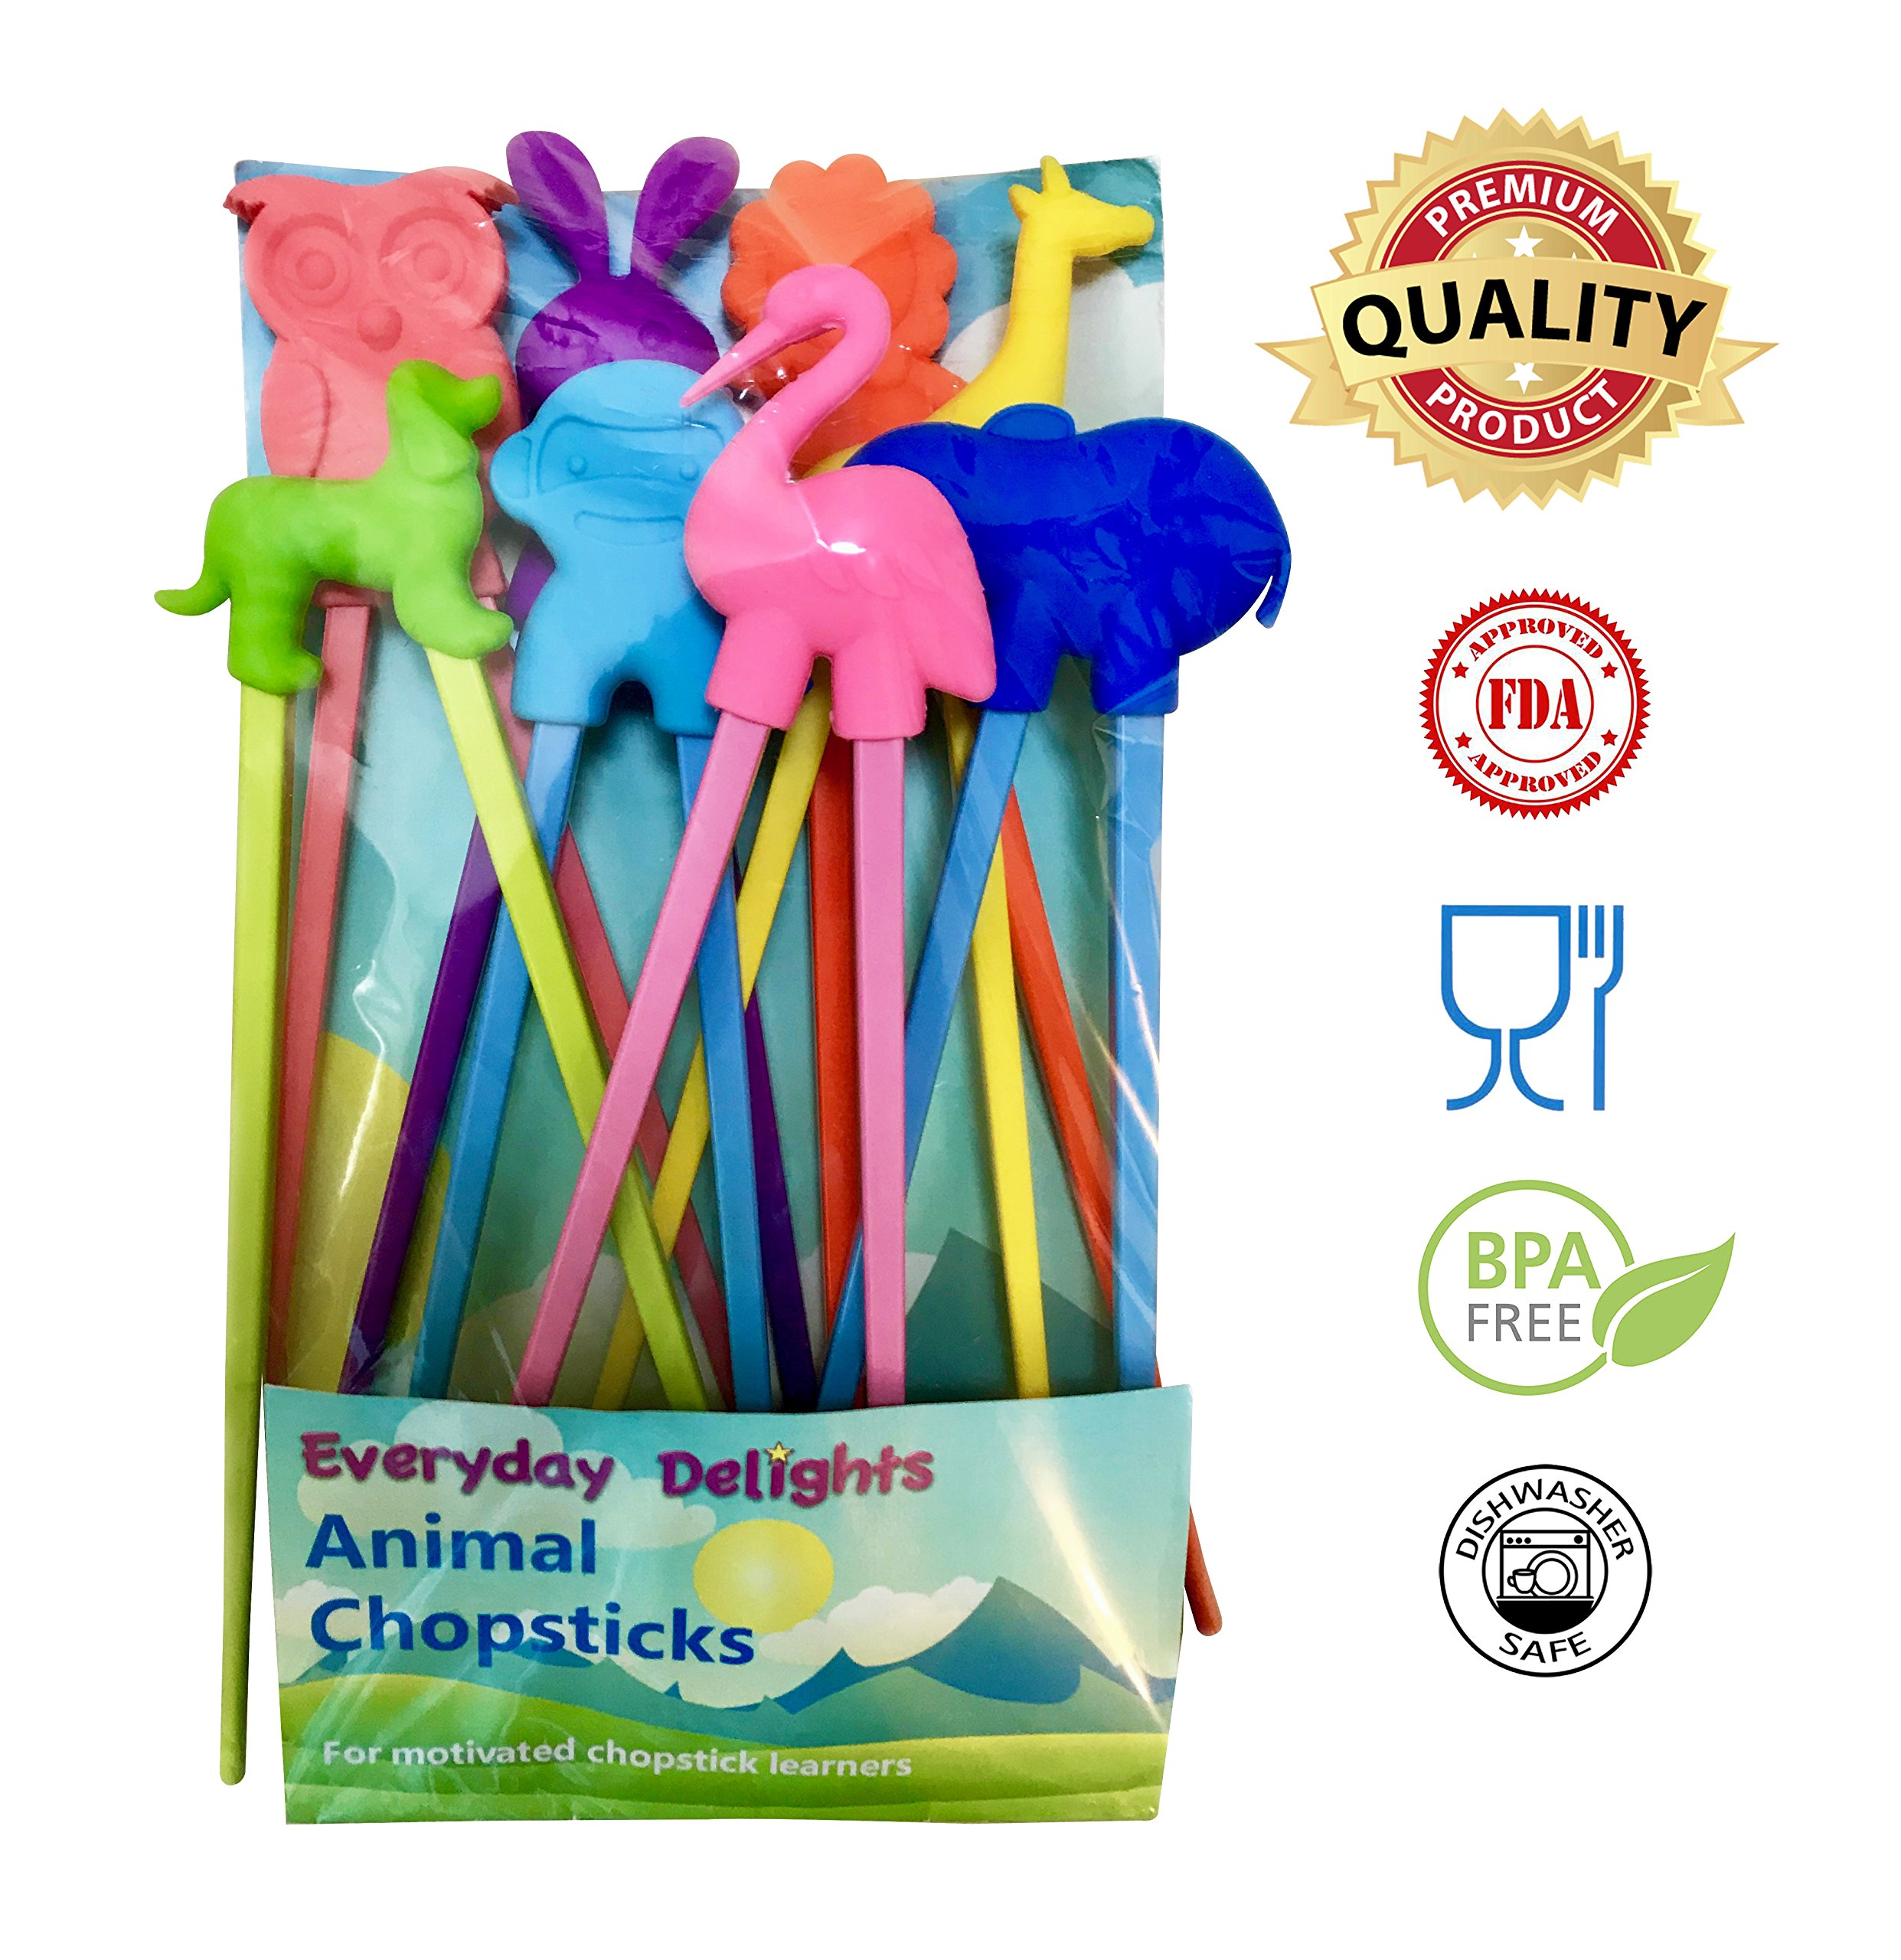 Everyday Delights Animal Training Chopstick Utensil Set (Rabbit, Flamingo, Giraffe, Dog, Elephant, Lion, Monkey, Owl) for Children, Kids, Teens, Adults, 8 pairs - Cute, Eco-friendly, Reusable, Durable by Everyday